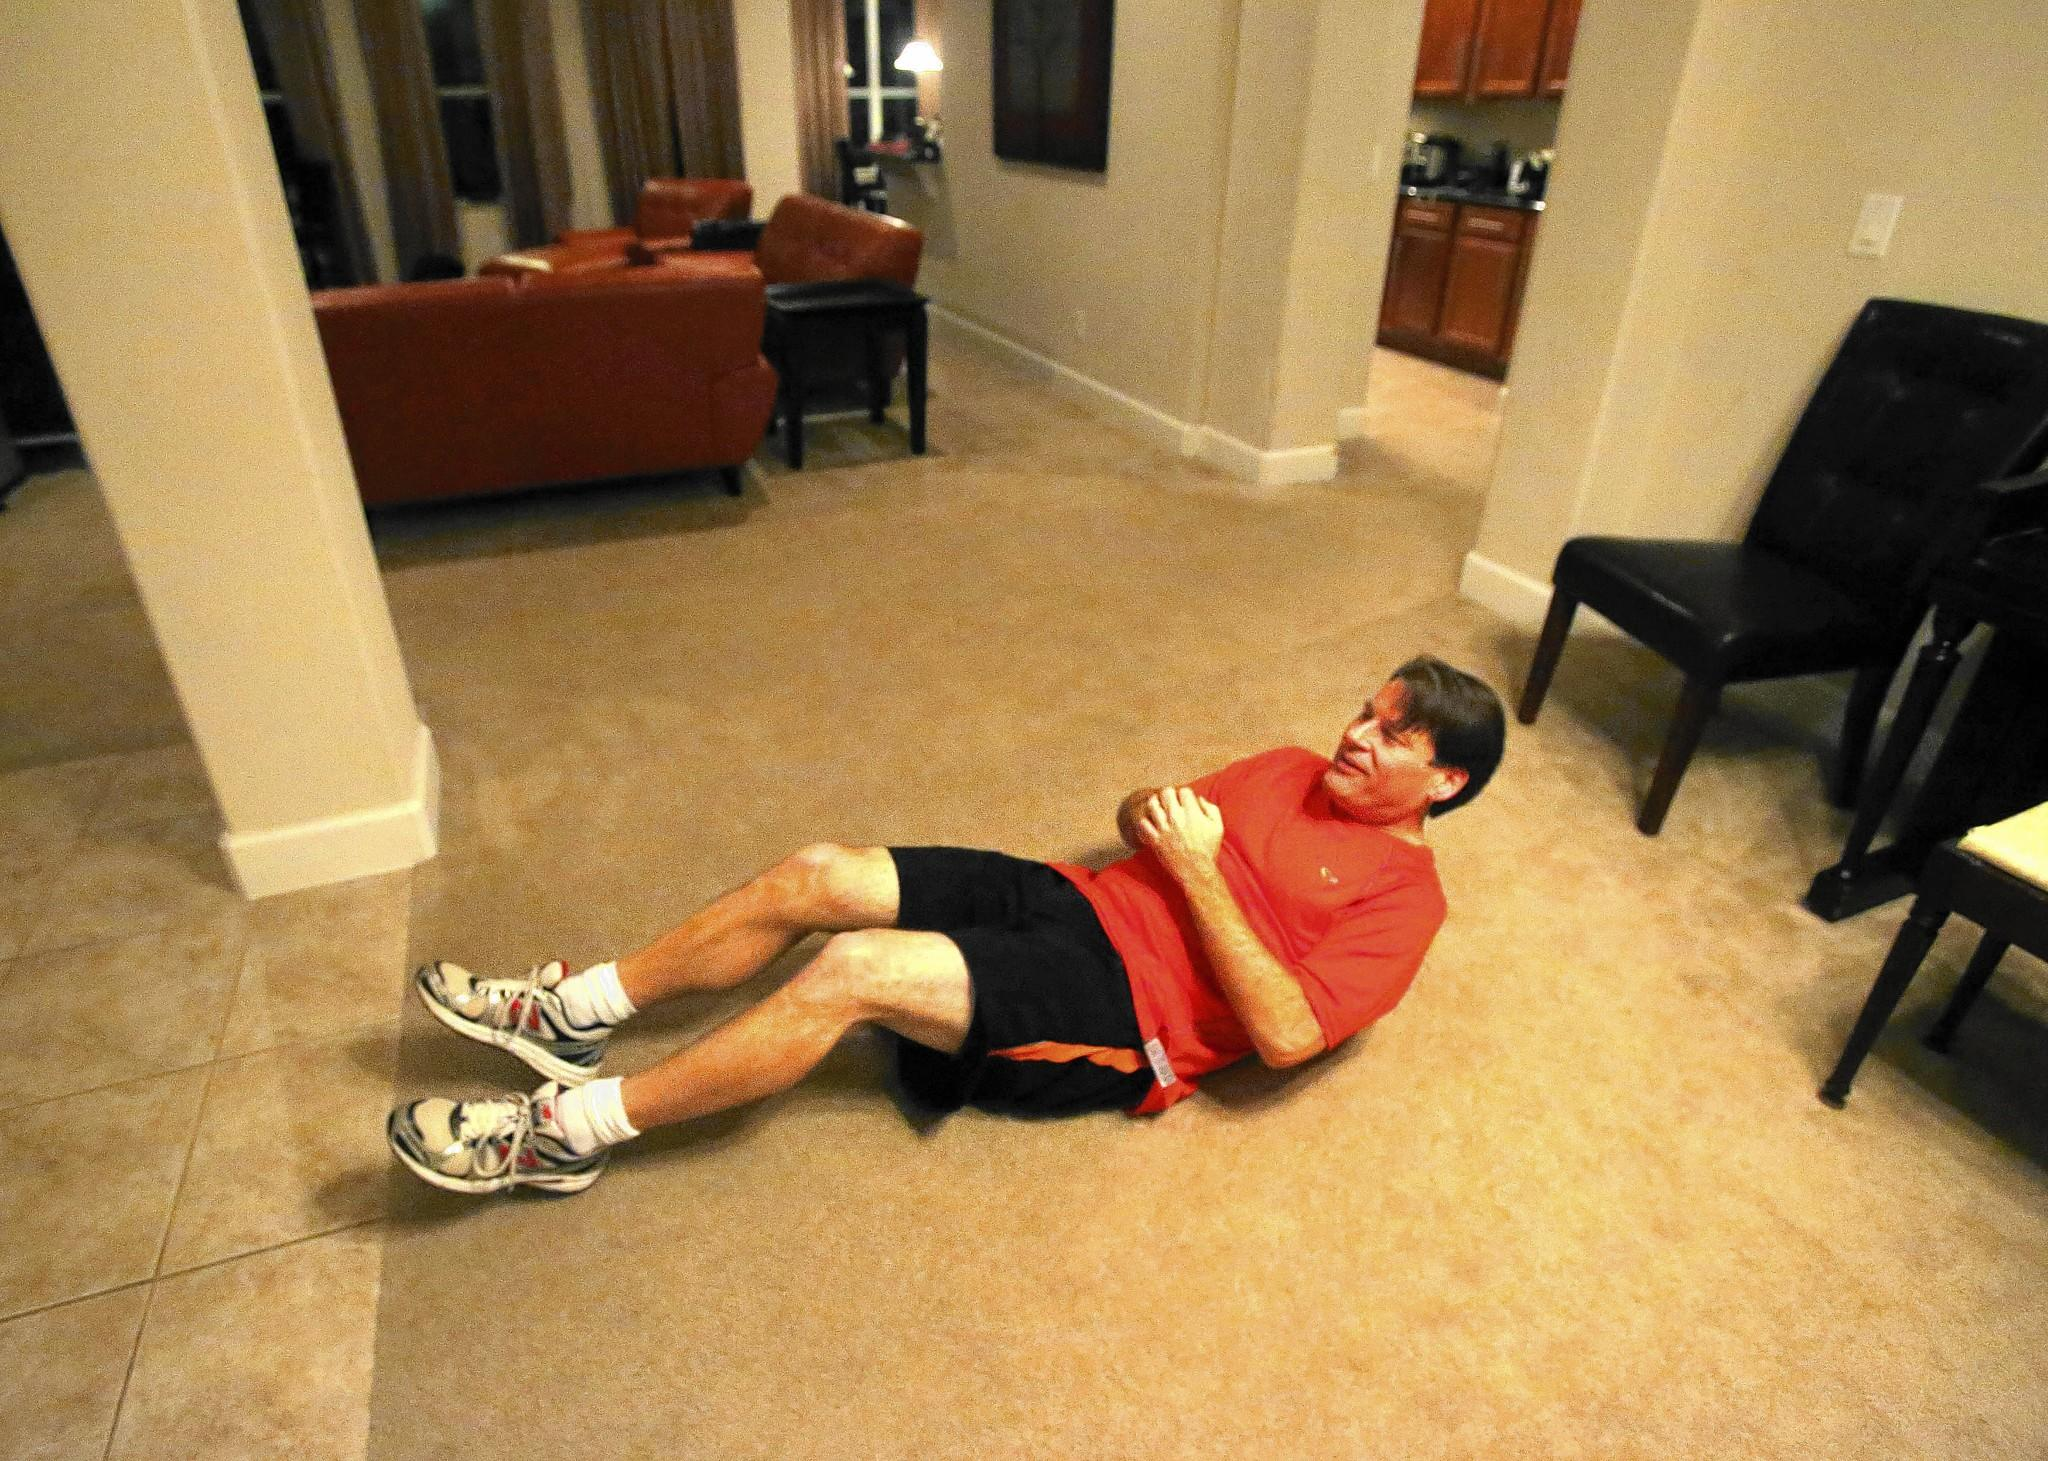 Kevin Wertman still does traditional exercises in his house to aid his weight loss.